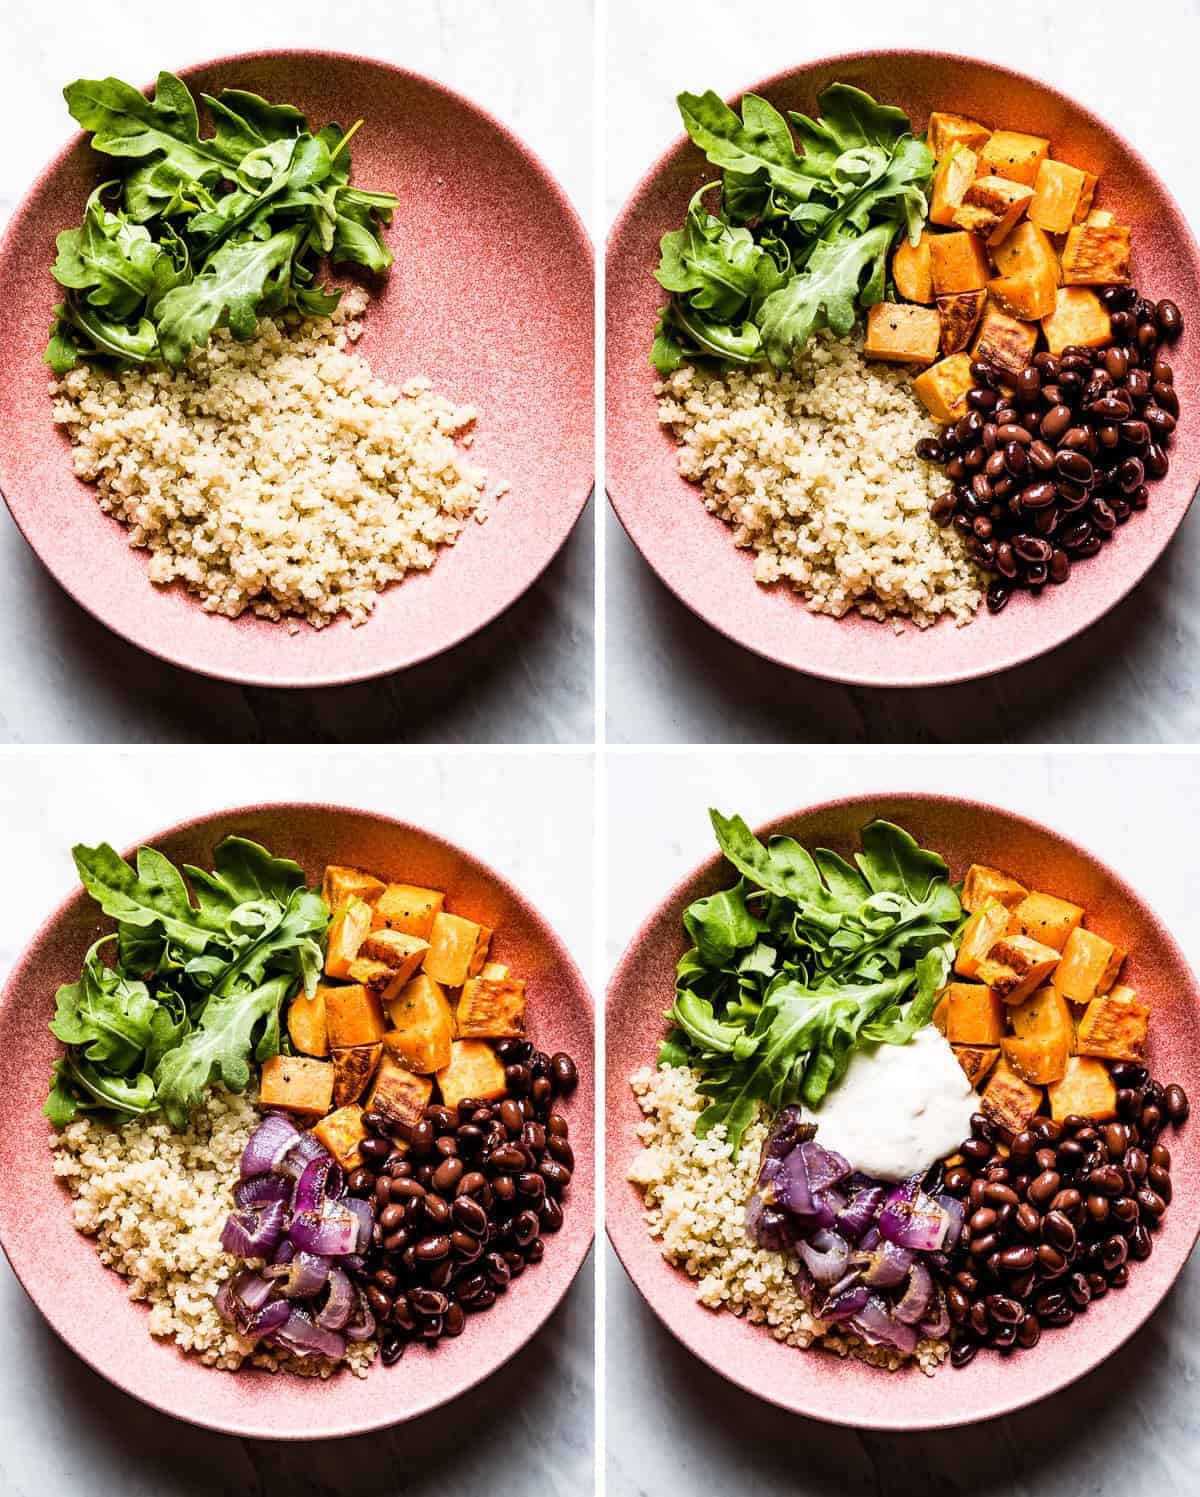 4 photos showing how to assemble this quinoa bowl recipe